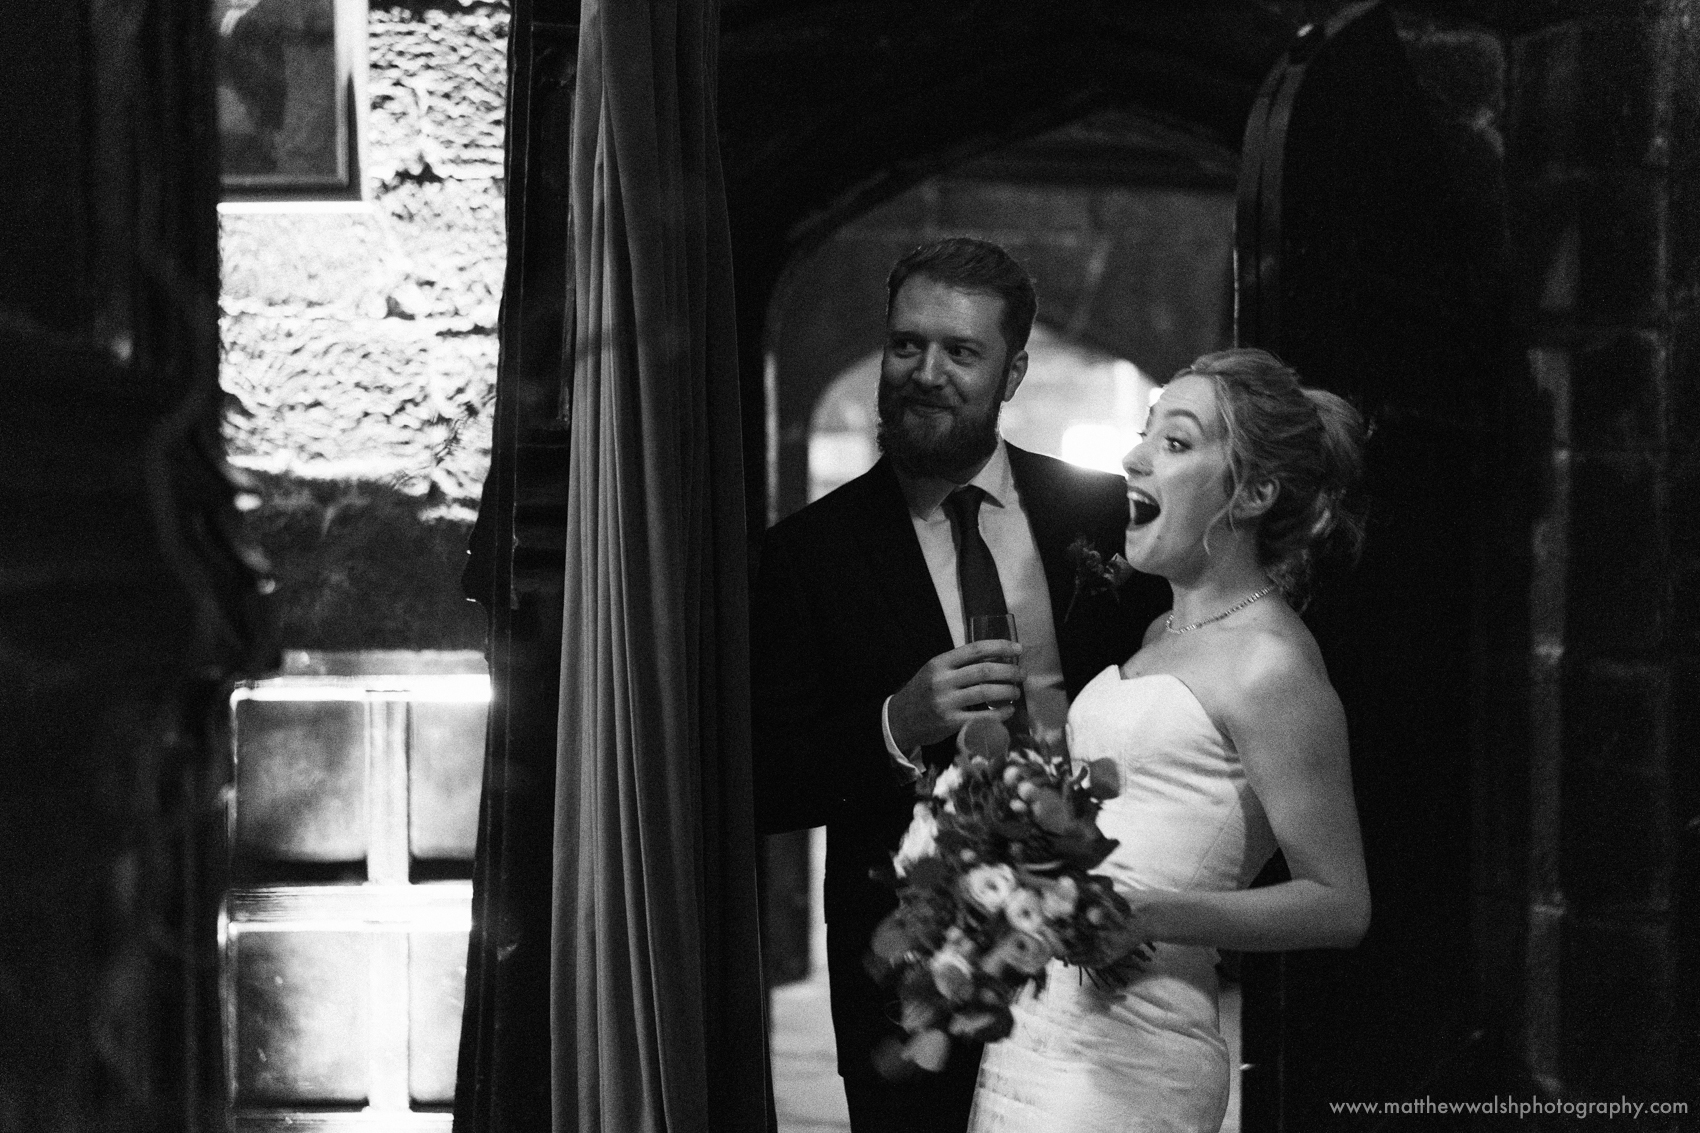 The bride certainly finds something funny